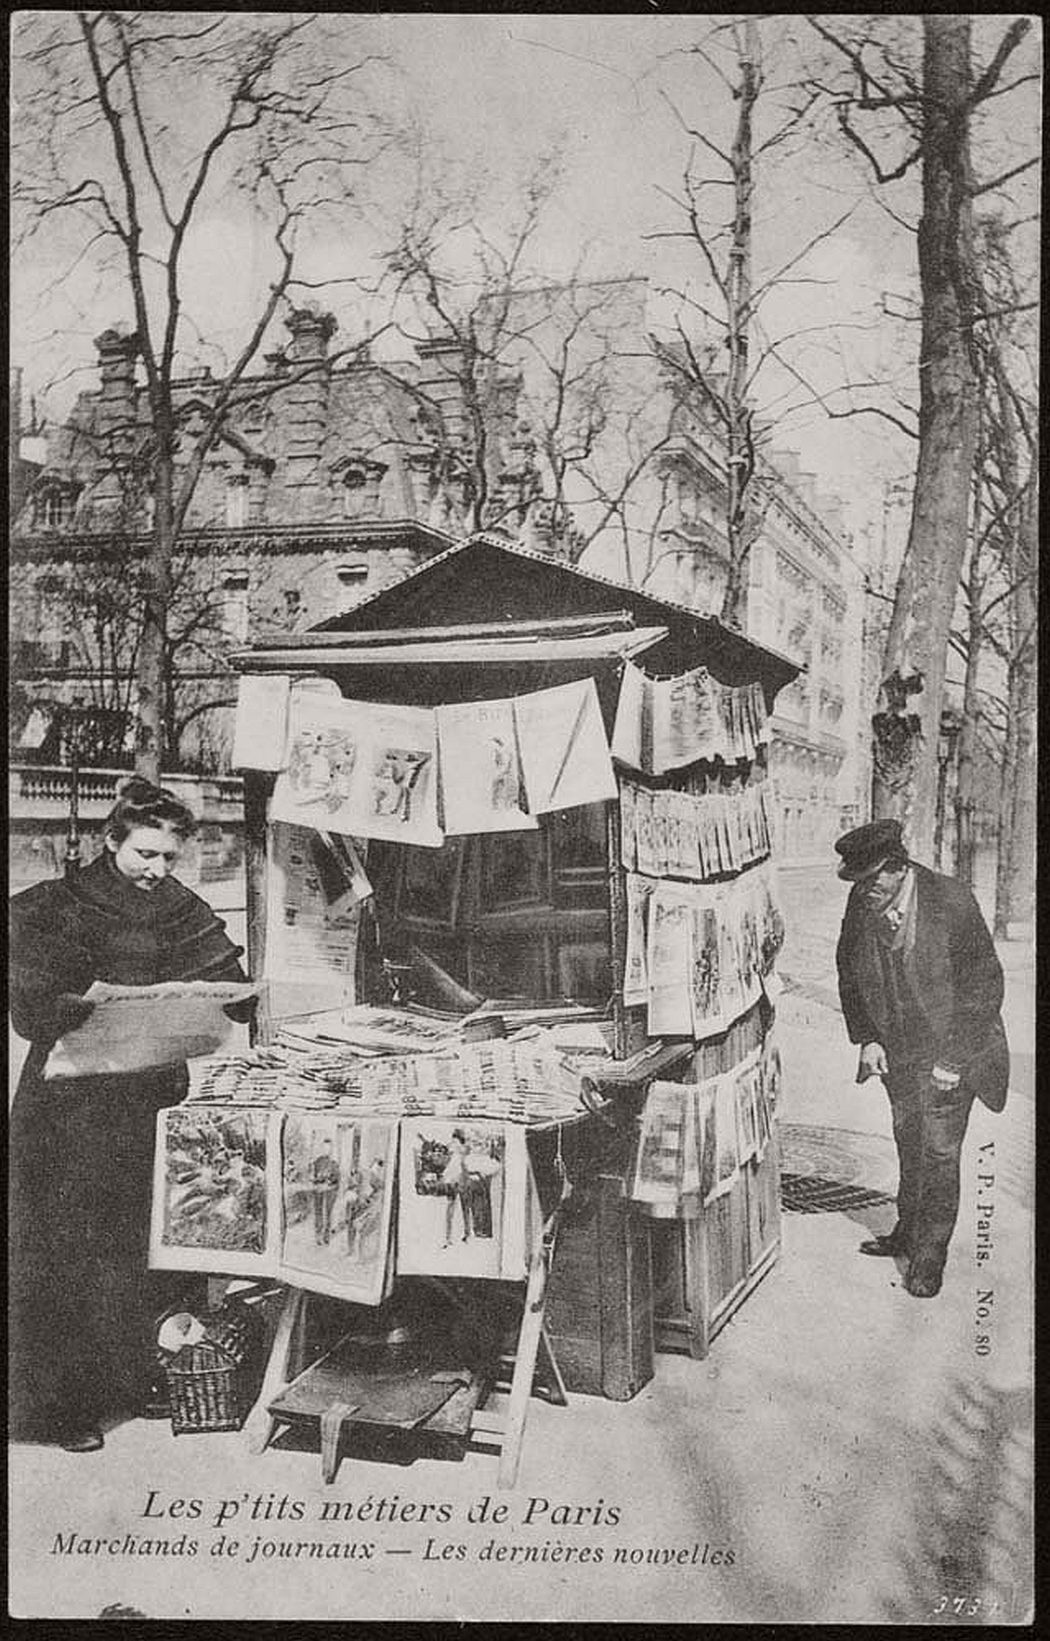 Atget: Postcards of a Lost Paris